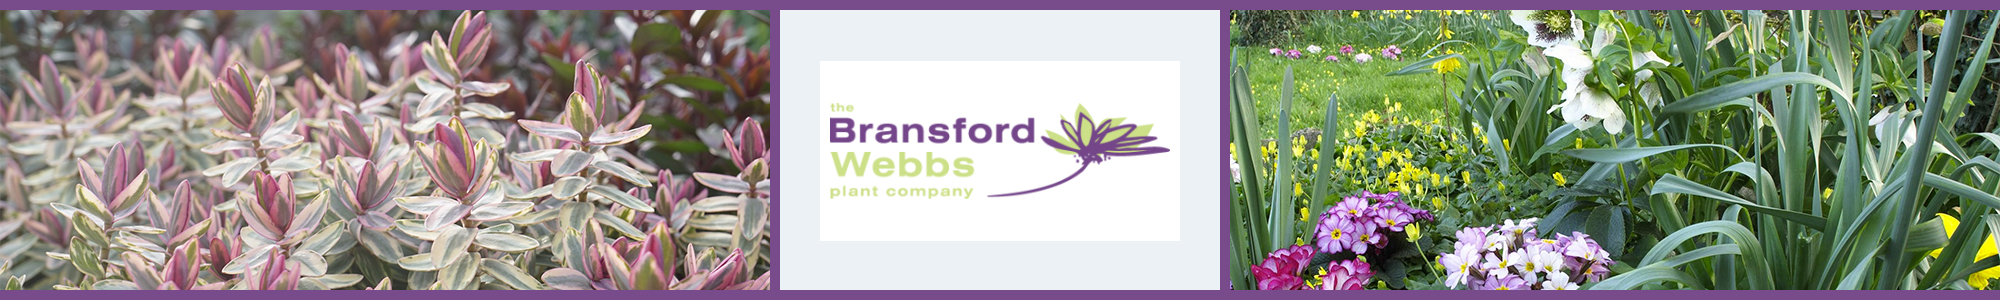 The Bransford Webbs Plant Company